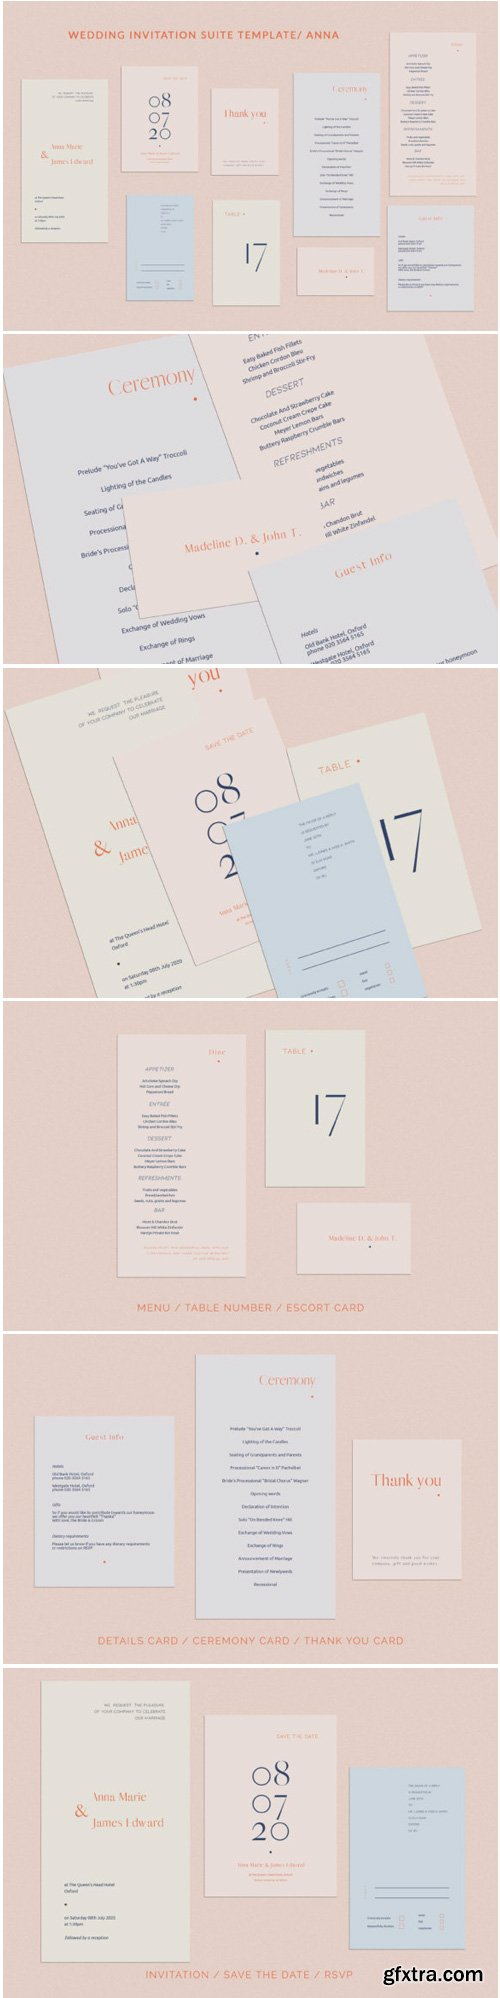 Anna Wedding Invitation Suite 1771800